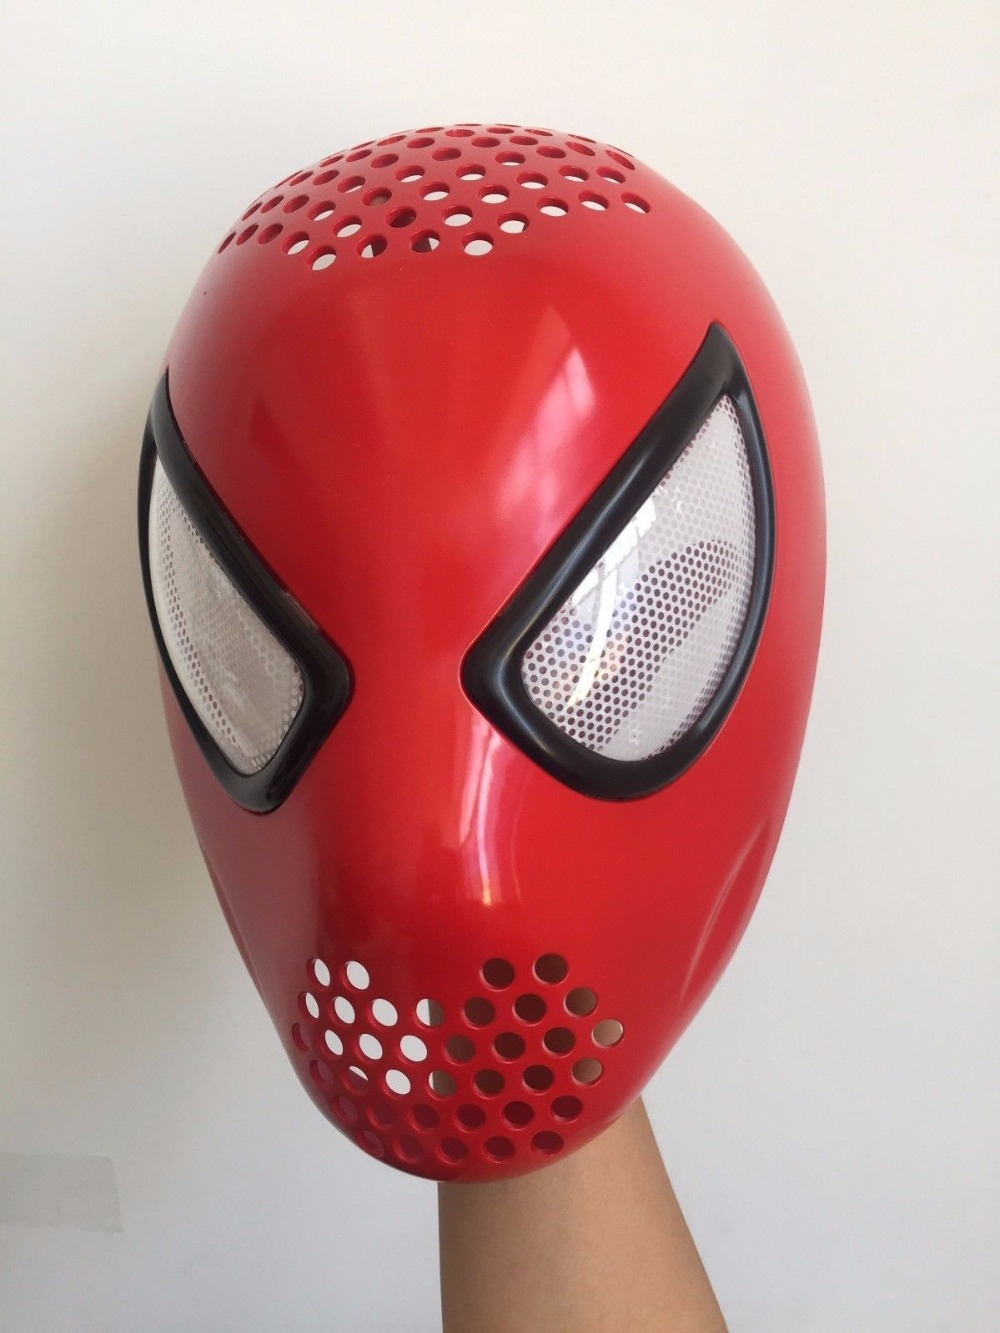 Здесь продается  Spider-man Home-coming Red Faceshell with Lens Silicone 3D Mask Cosplay Role Play   Одежда и аксессуары